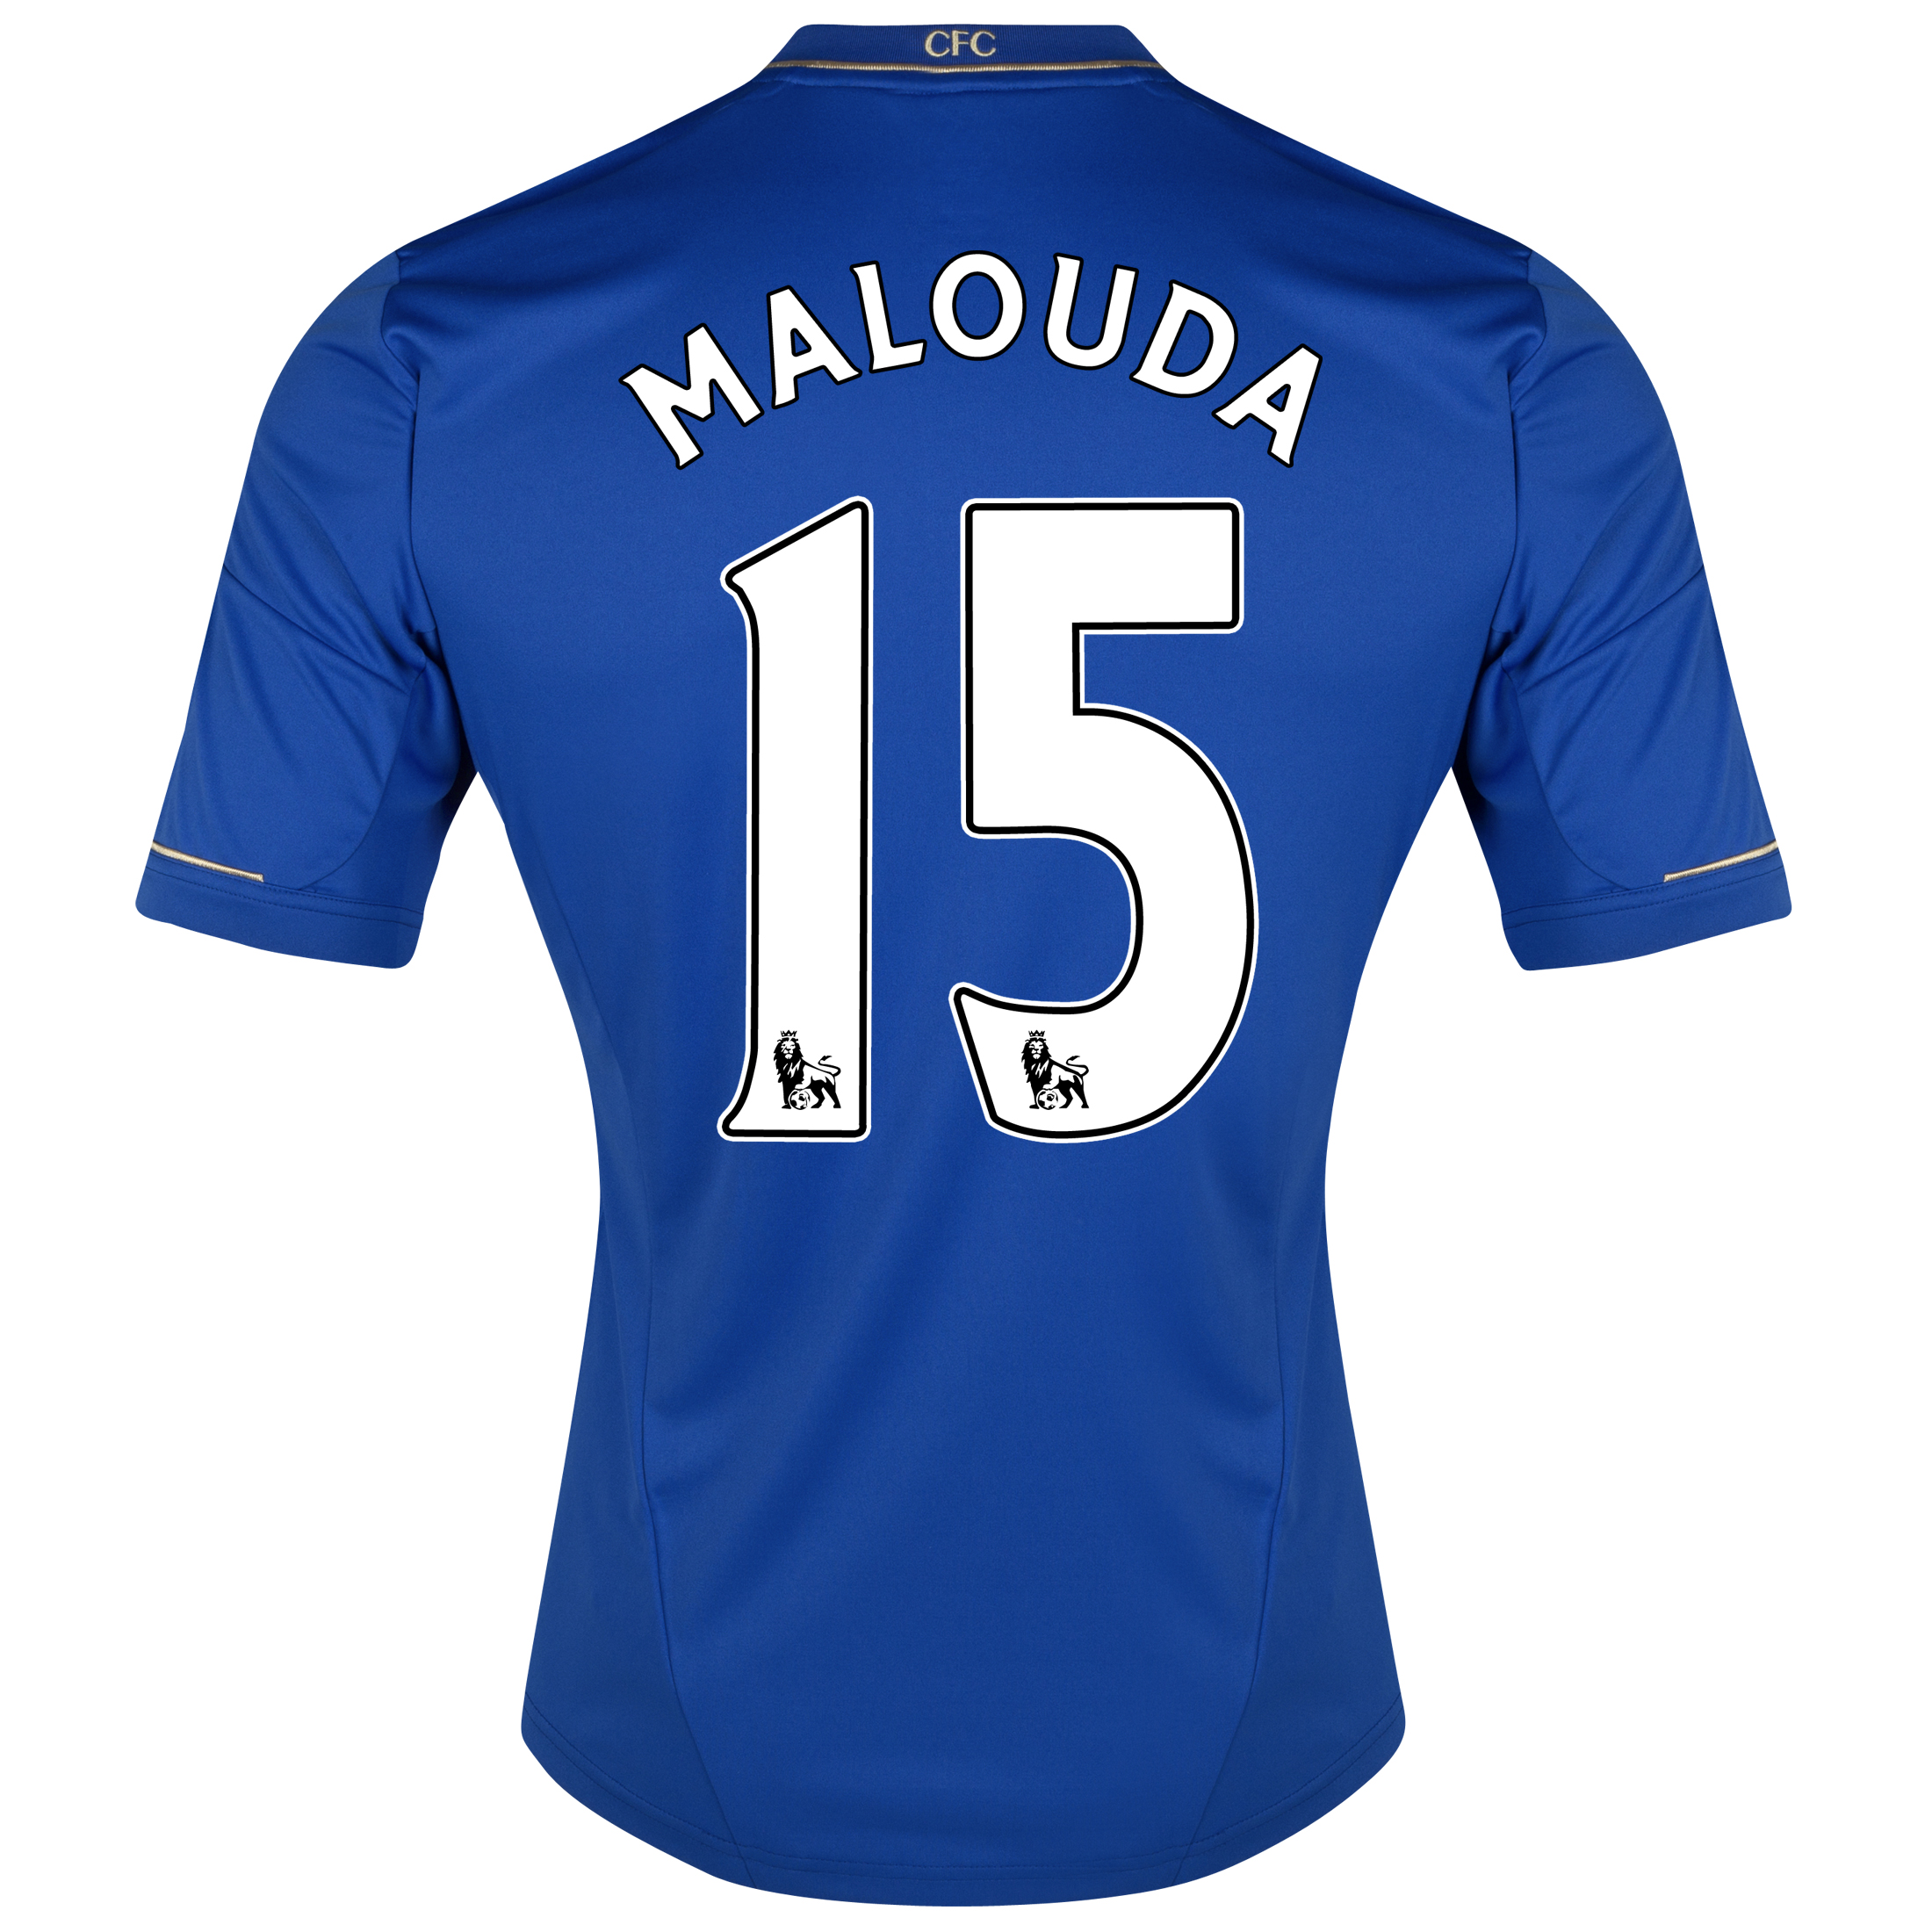 Chelsea Home Shirt 2012/13 with Malouda 15 printing